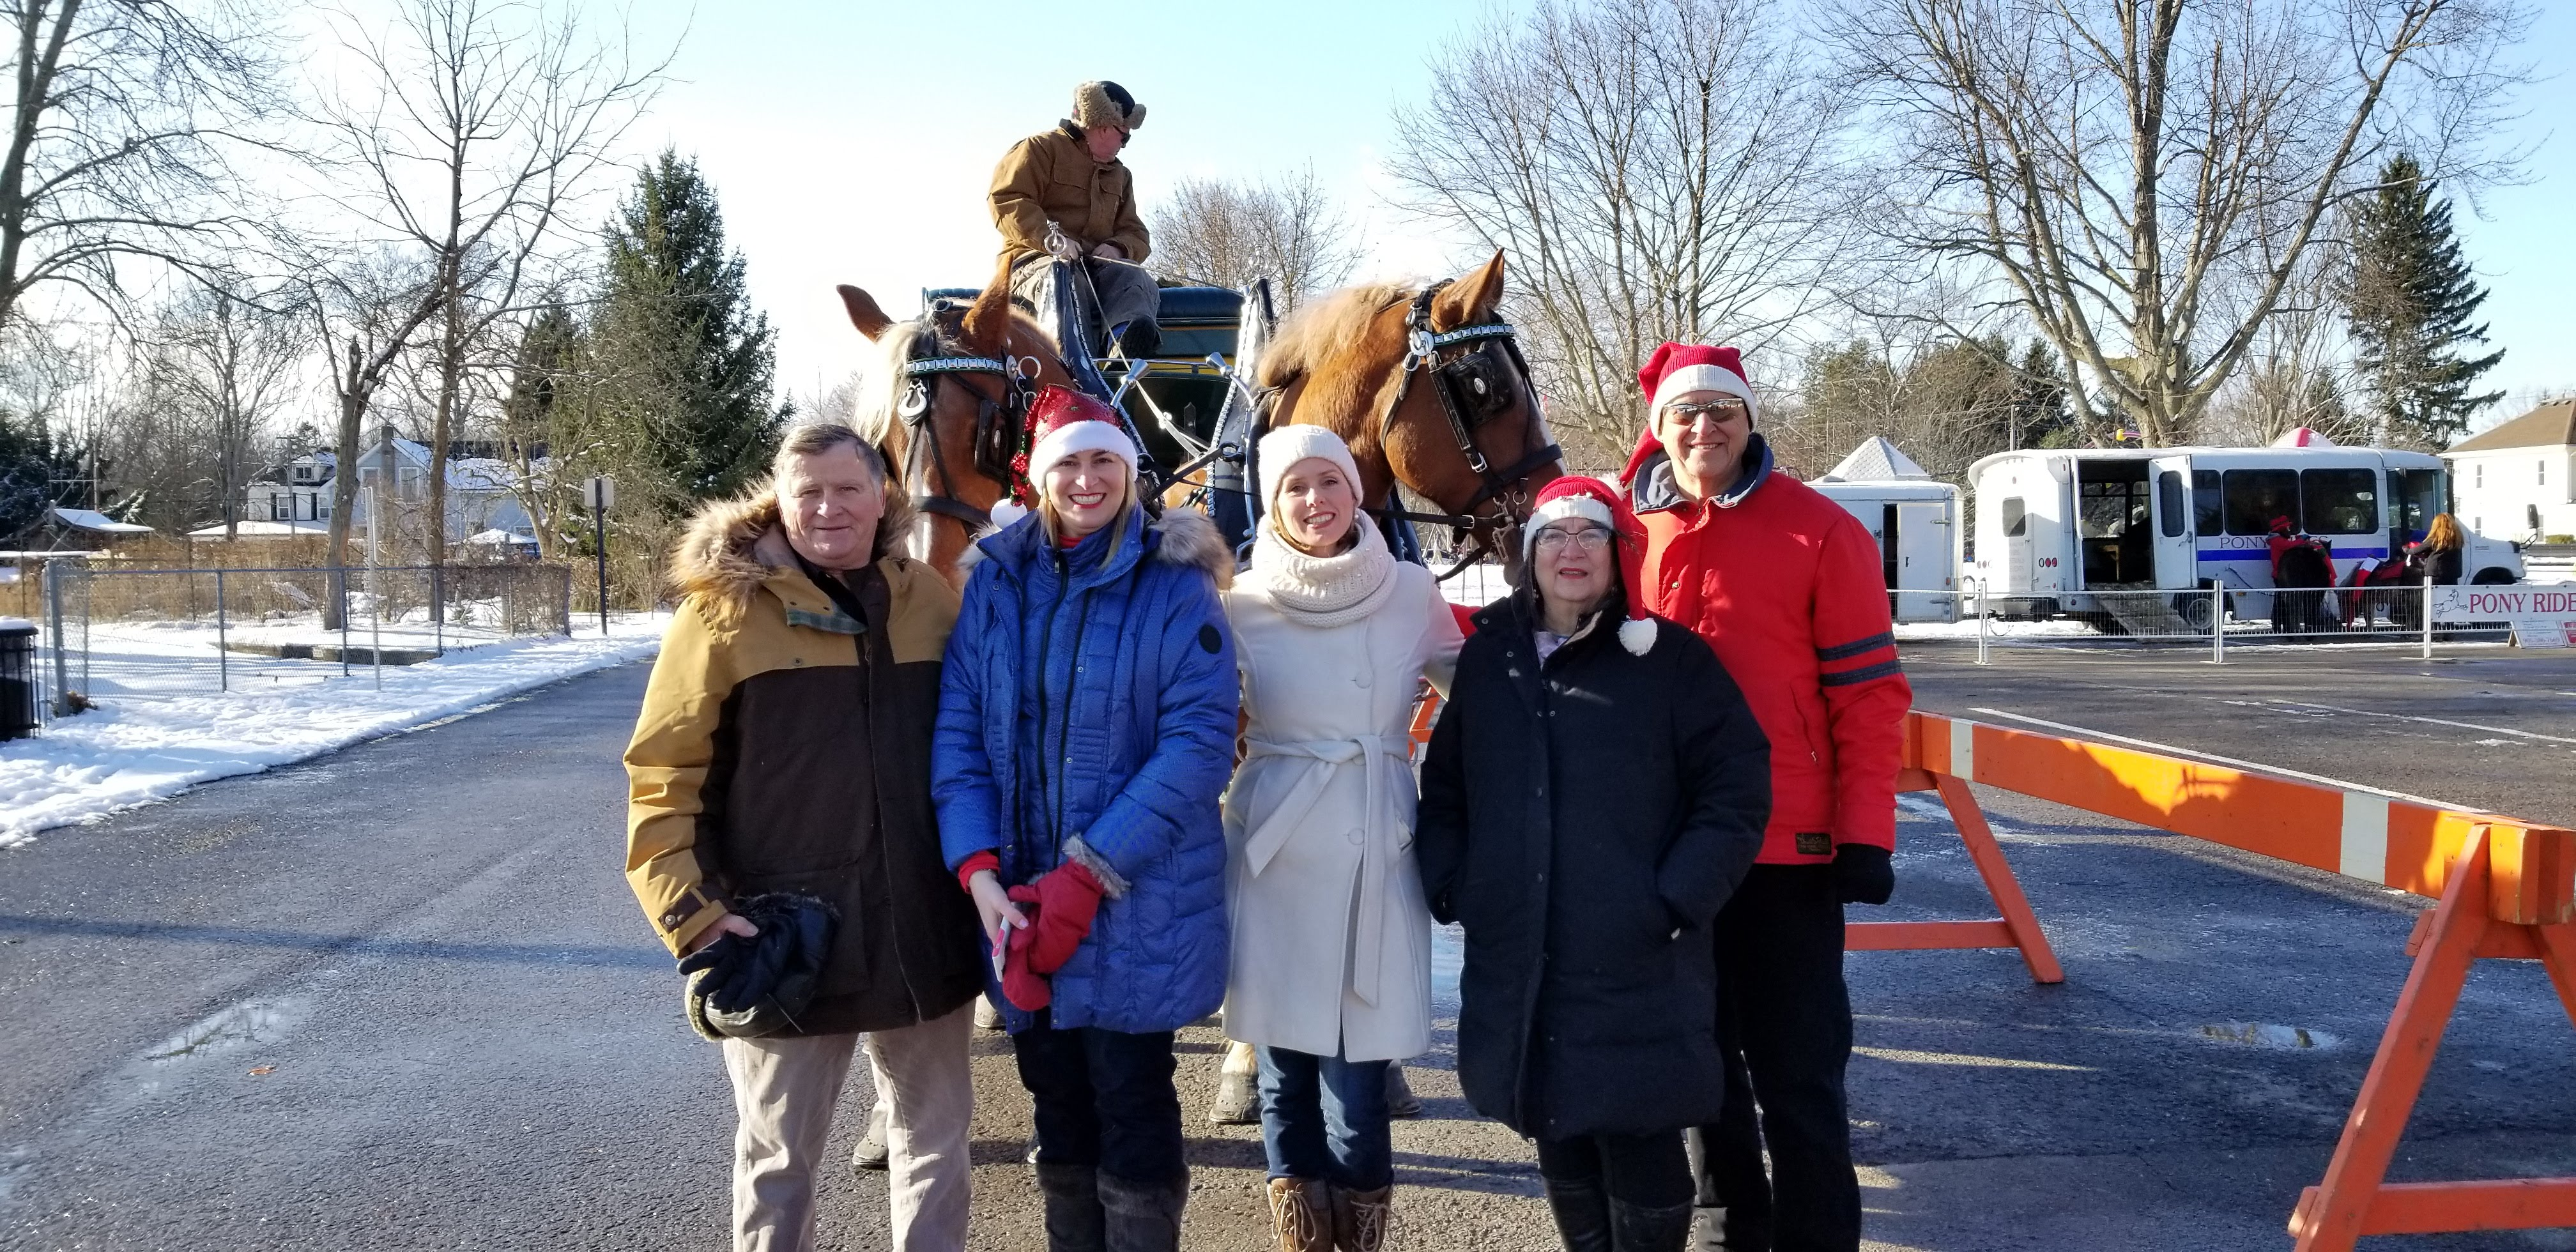 Councillors posing for photo on street during winter parade